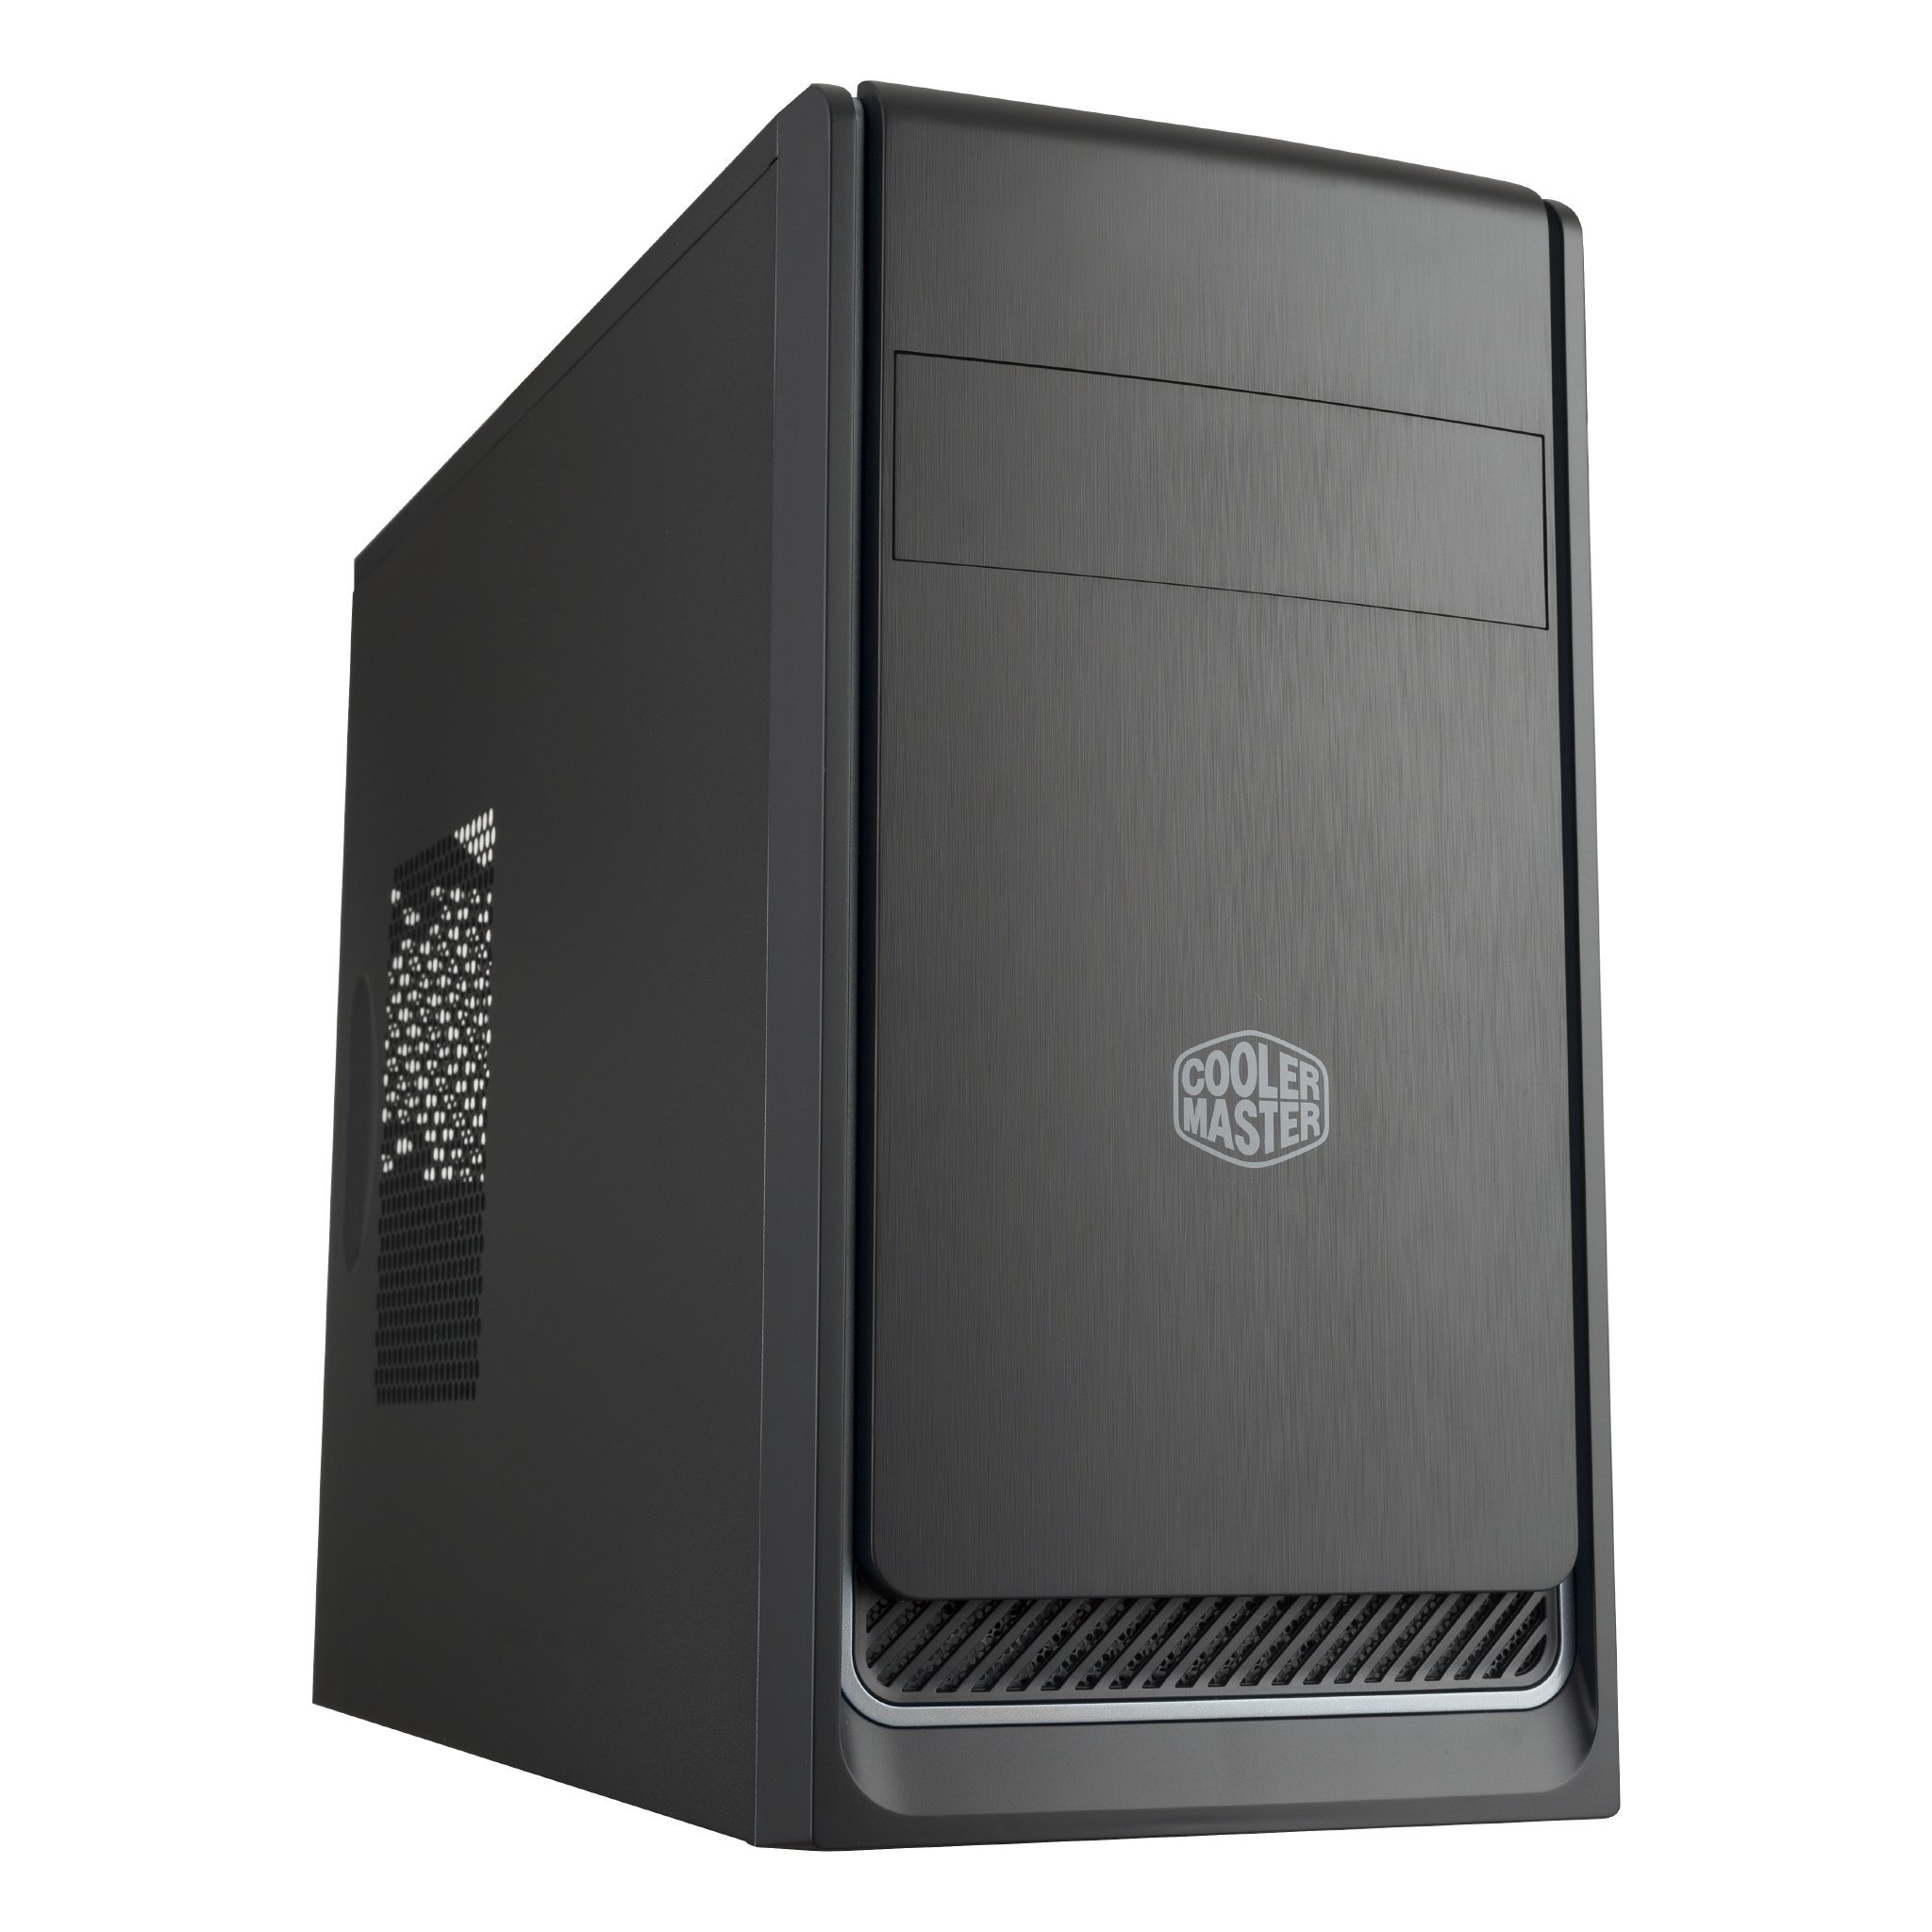 Cooler Master MasterBox E300L Micro-ATX Computer Case, Silver Trim, Brushed Texture Front Panel, Side Panel Air Vent